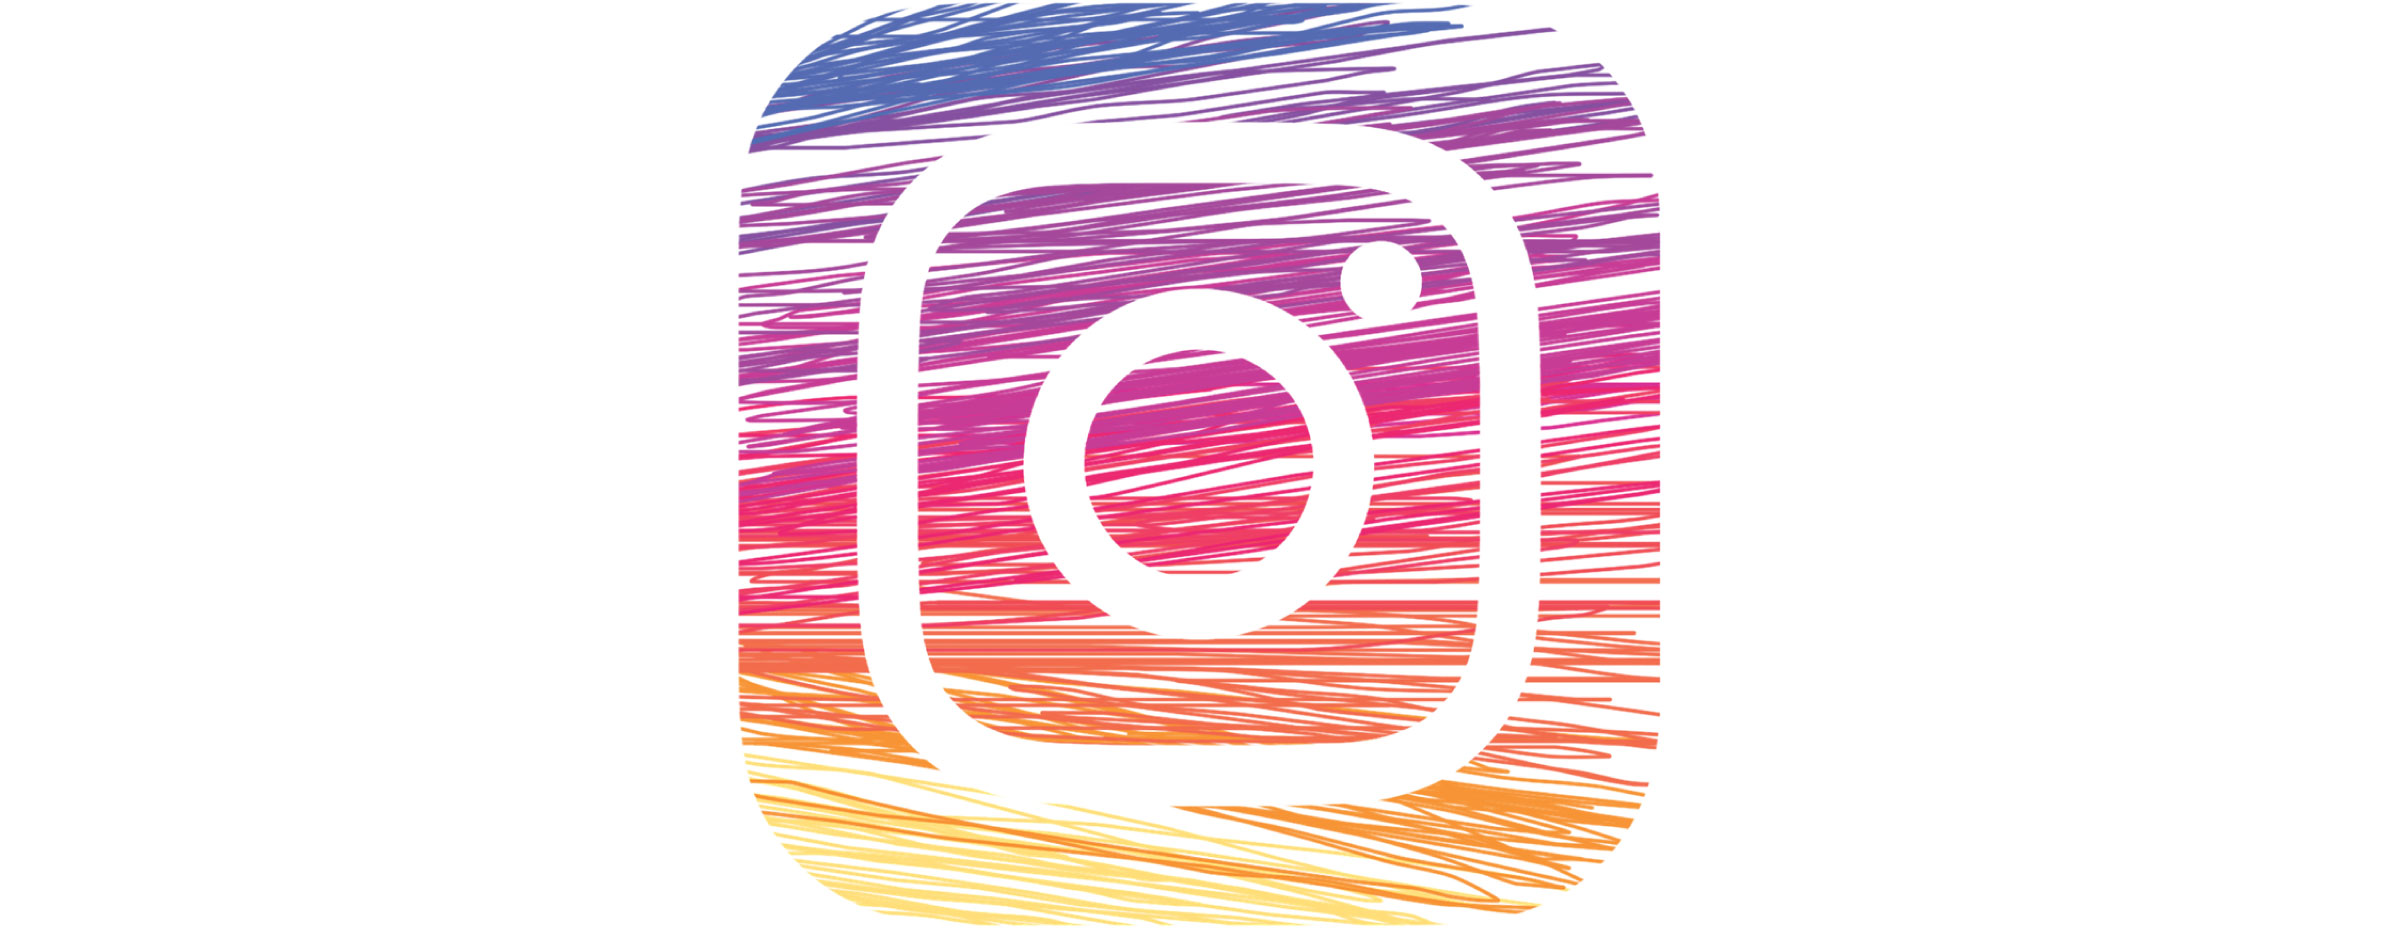 BOOST YOUR DIGITAL BRAND WITH INSTAGRAM STORIES